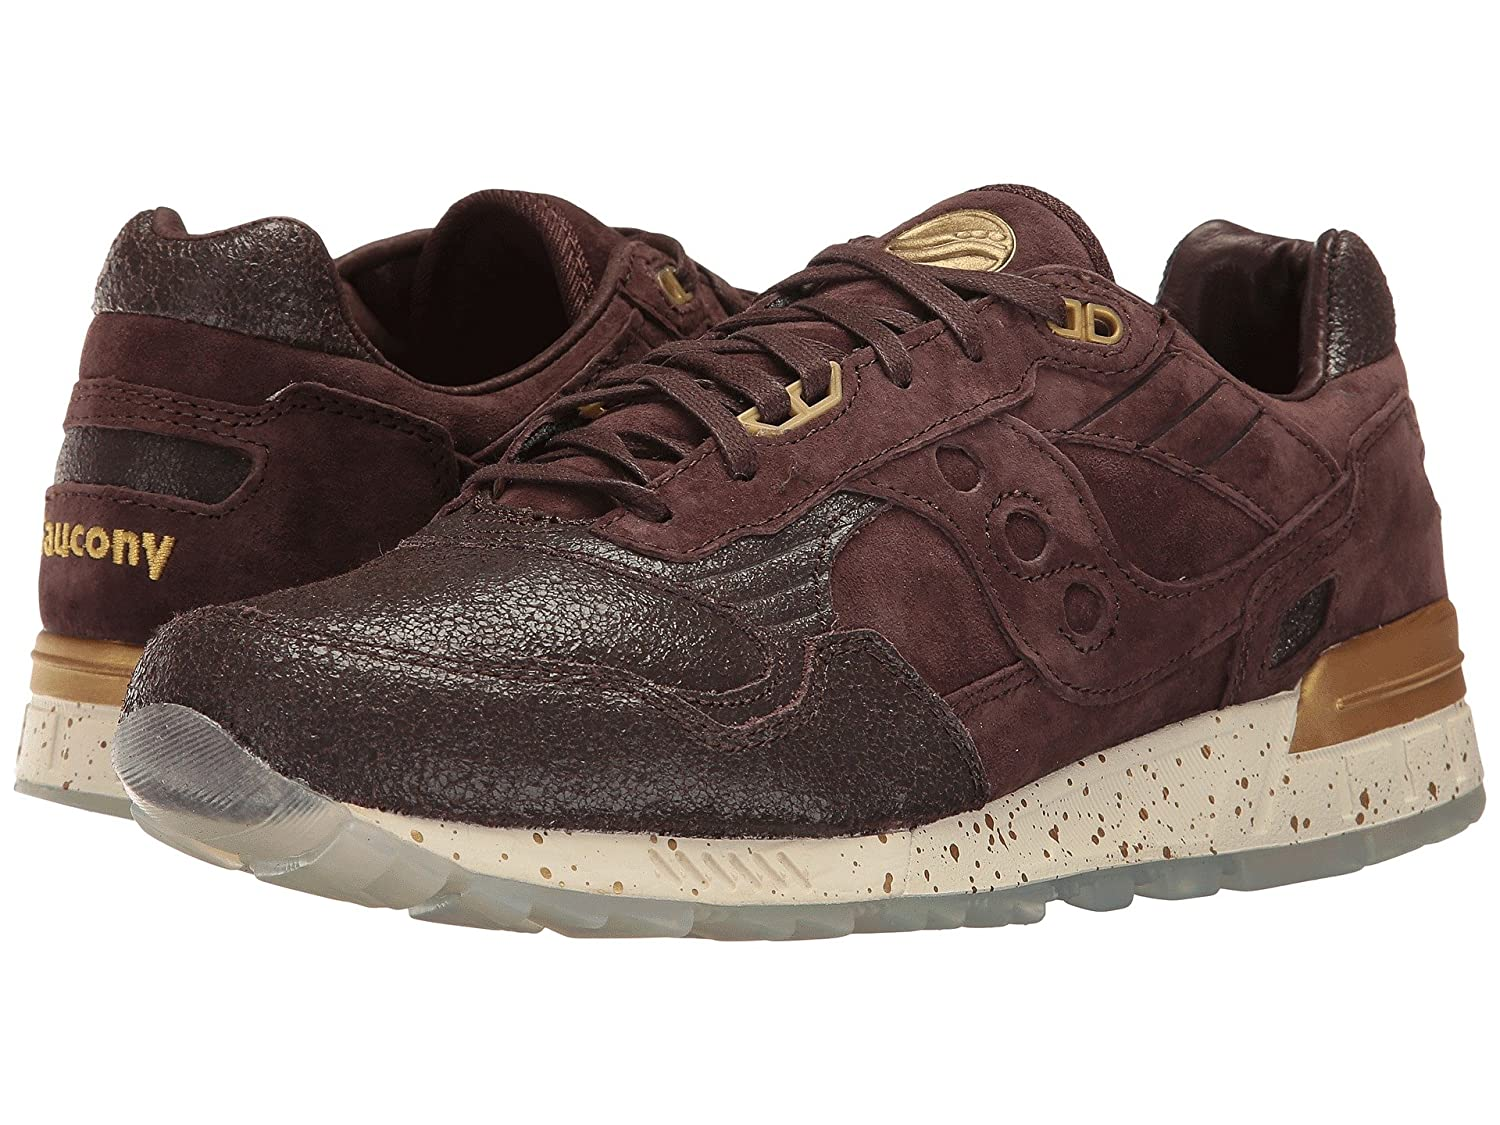 3edc3bab Saucony Mens Shadow 5000 Low Top Lace Up Fashion Sneakers